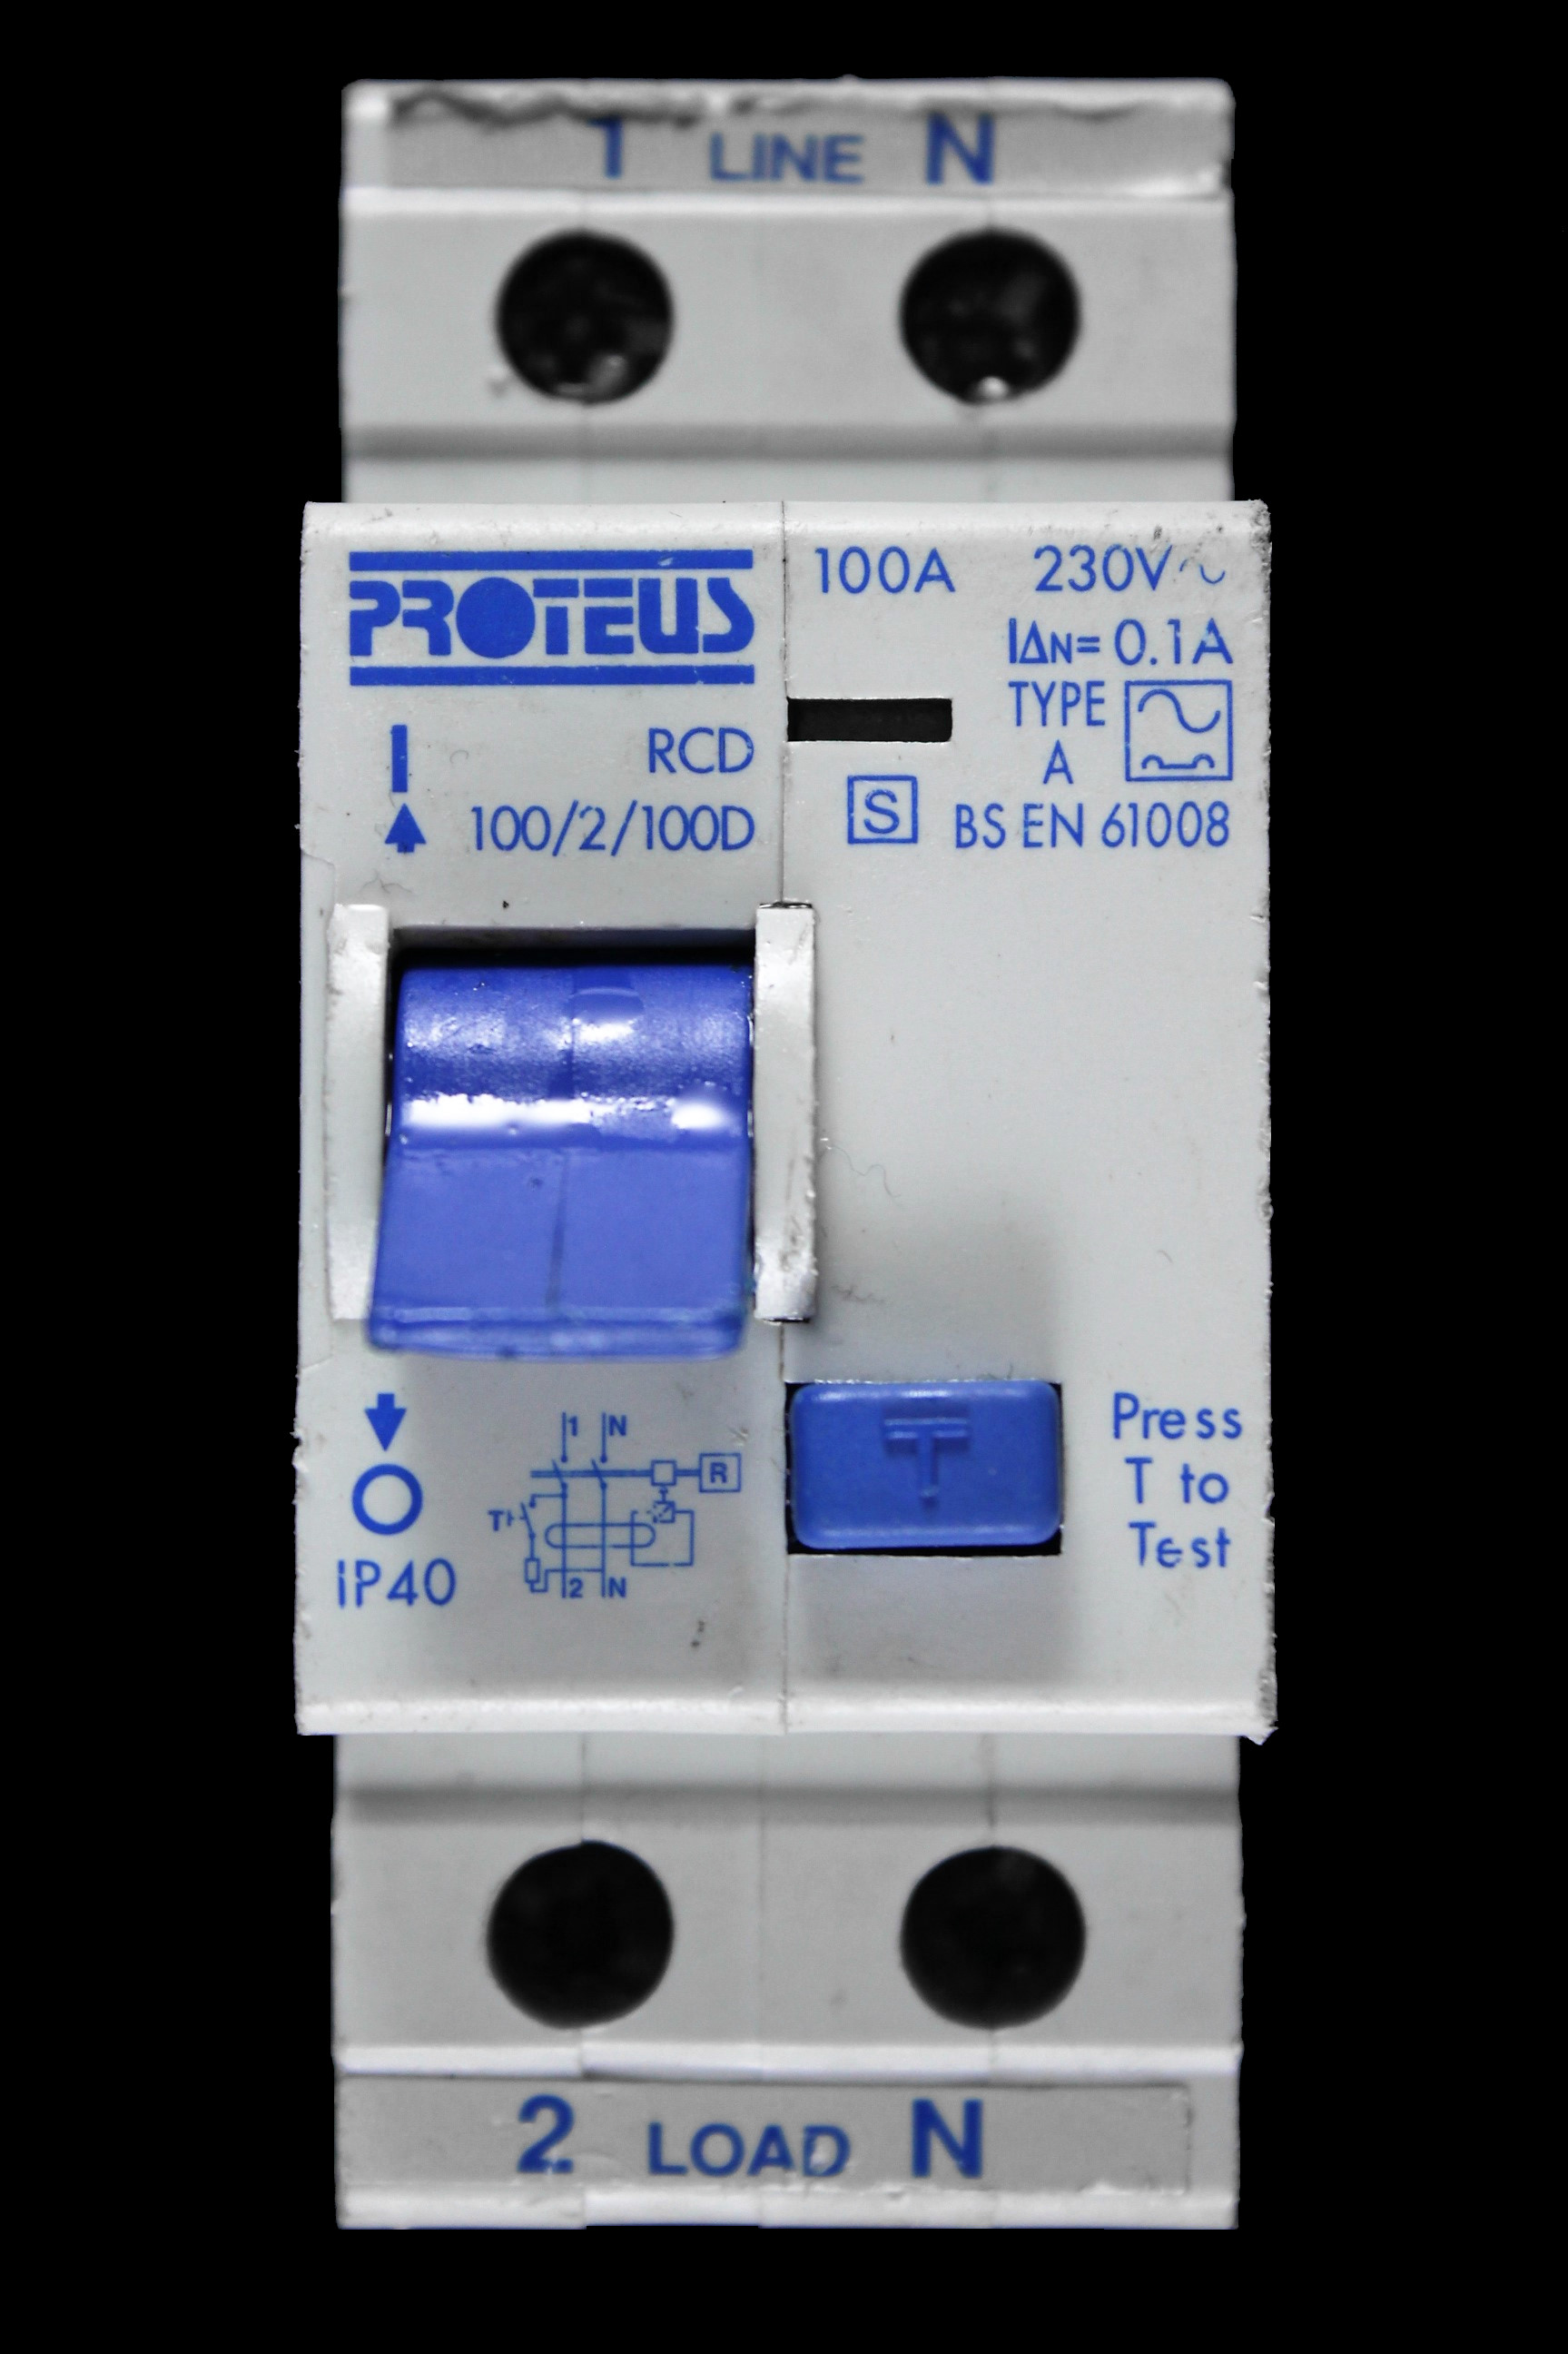 PROTEUS 100 AMP 100mA DOUBLE POLE TIME DELAY RCD 100/2/100D